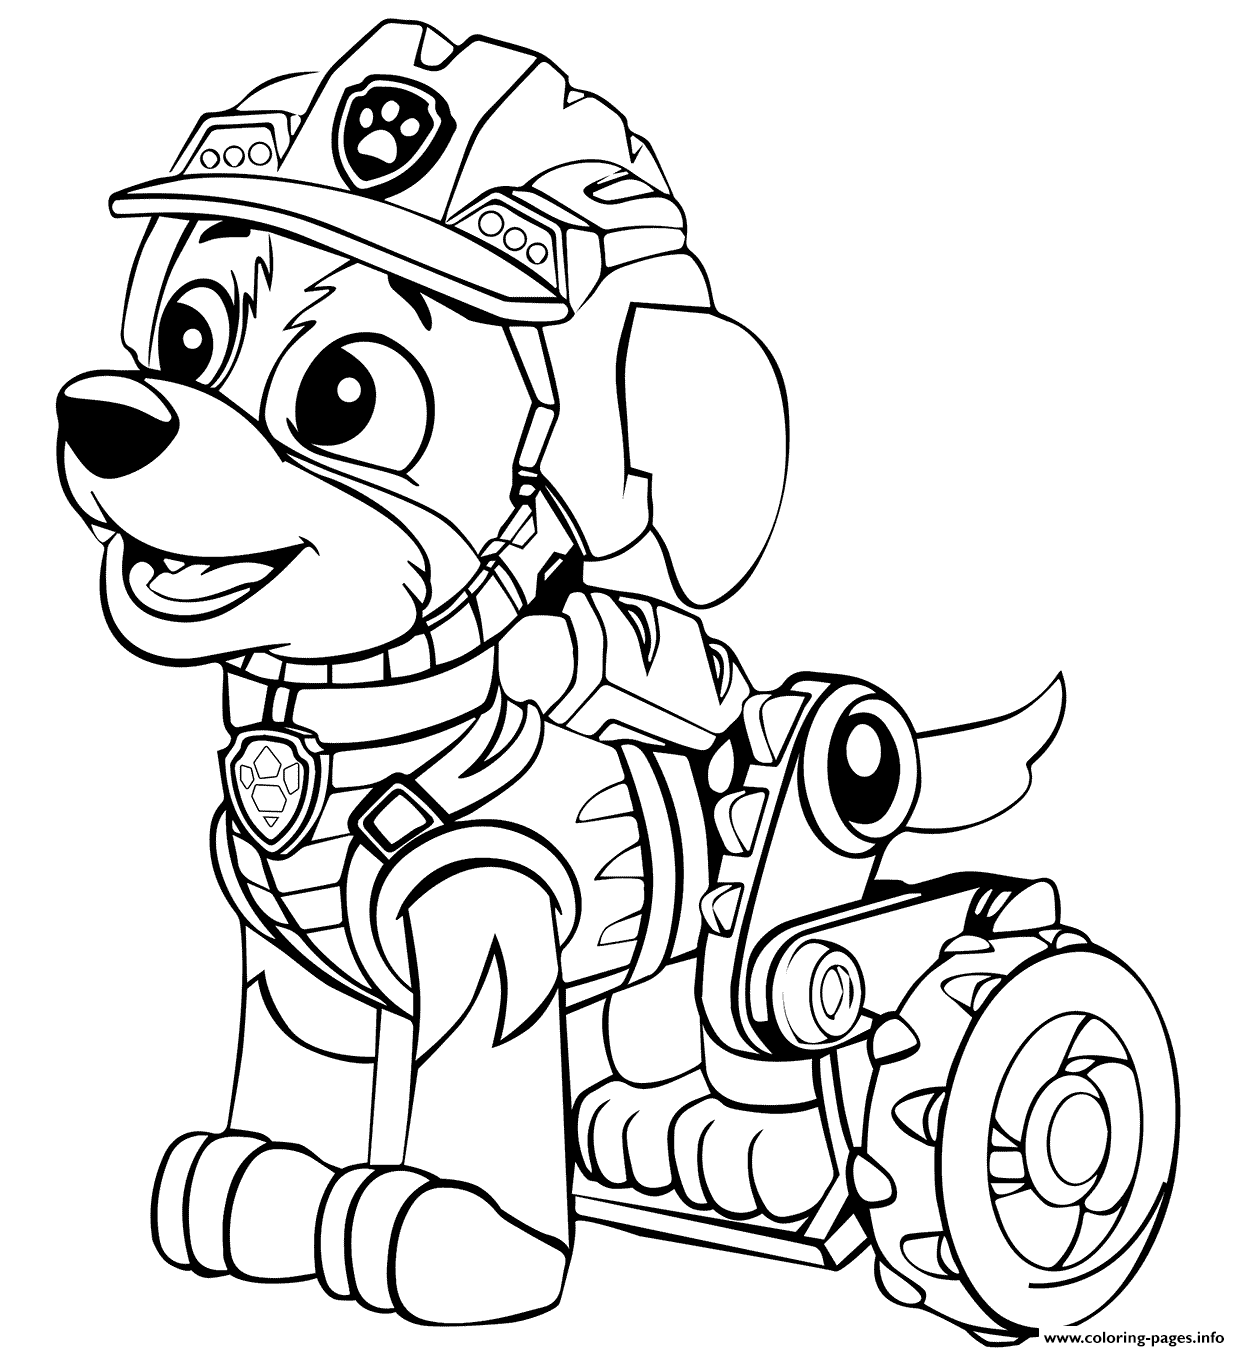 rescue dog coloring pages paw patrol dino rescue rex coloring pages printable coloring dog rescue pages